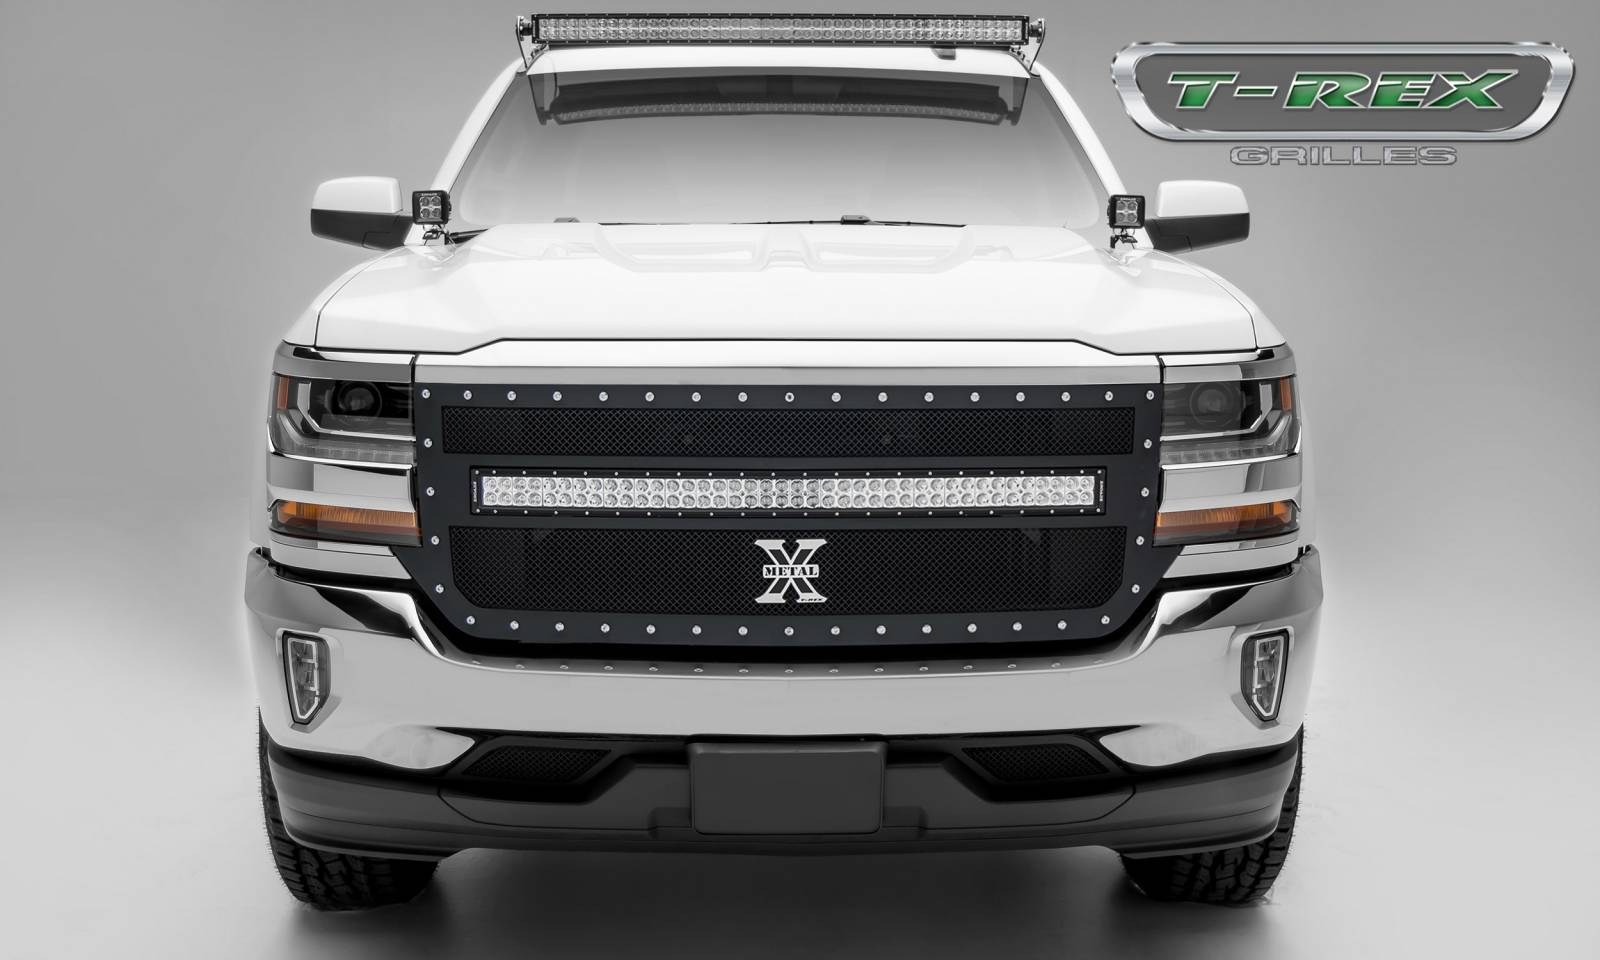 2016 2018 Silverado 1500 Torch Grille Black 1 Pc Replacement Chrome Studs Incl 1 40 Led Pn 6311271